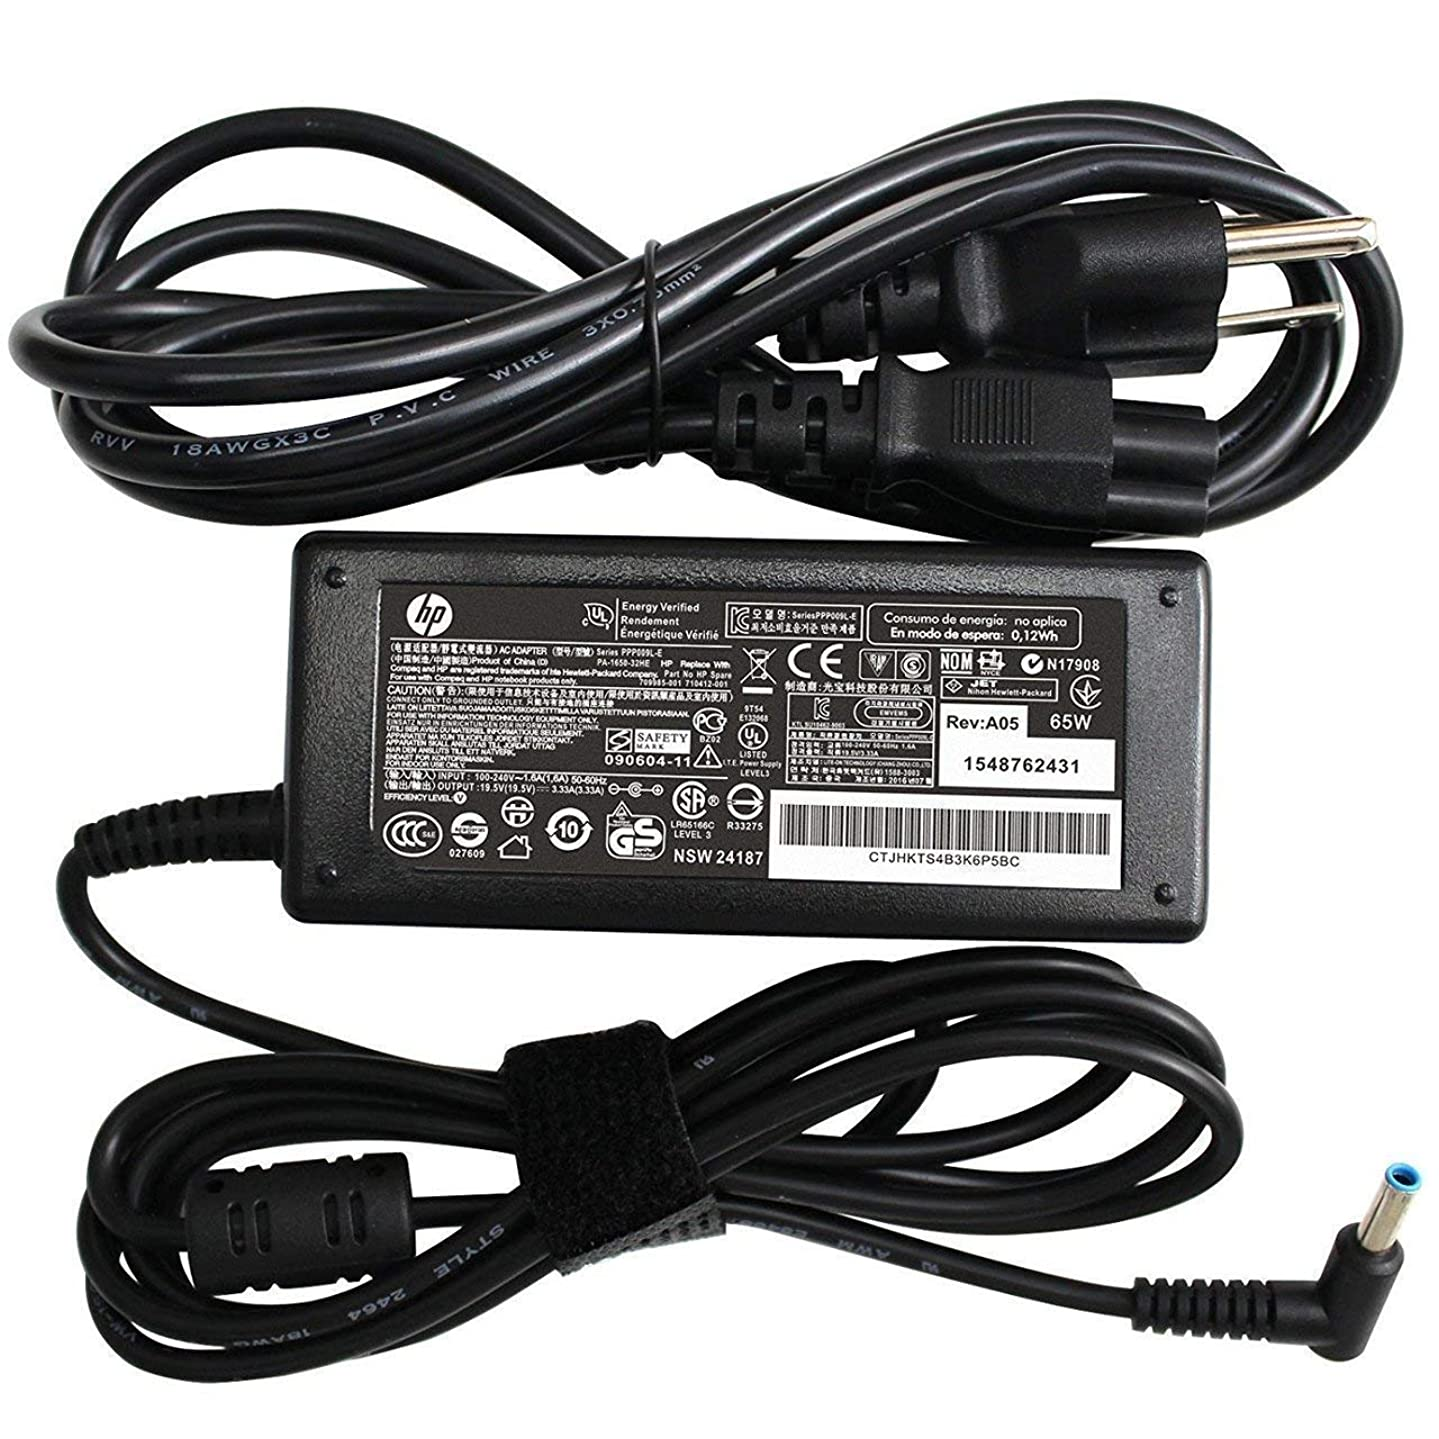 New Genuine AC Adapter for HP Chromebook Envy Pavilion 45W 19.5V 2.31A AC Adapter 755530-001 854054-002